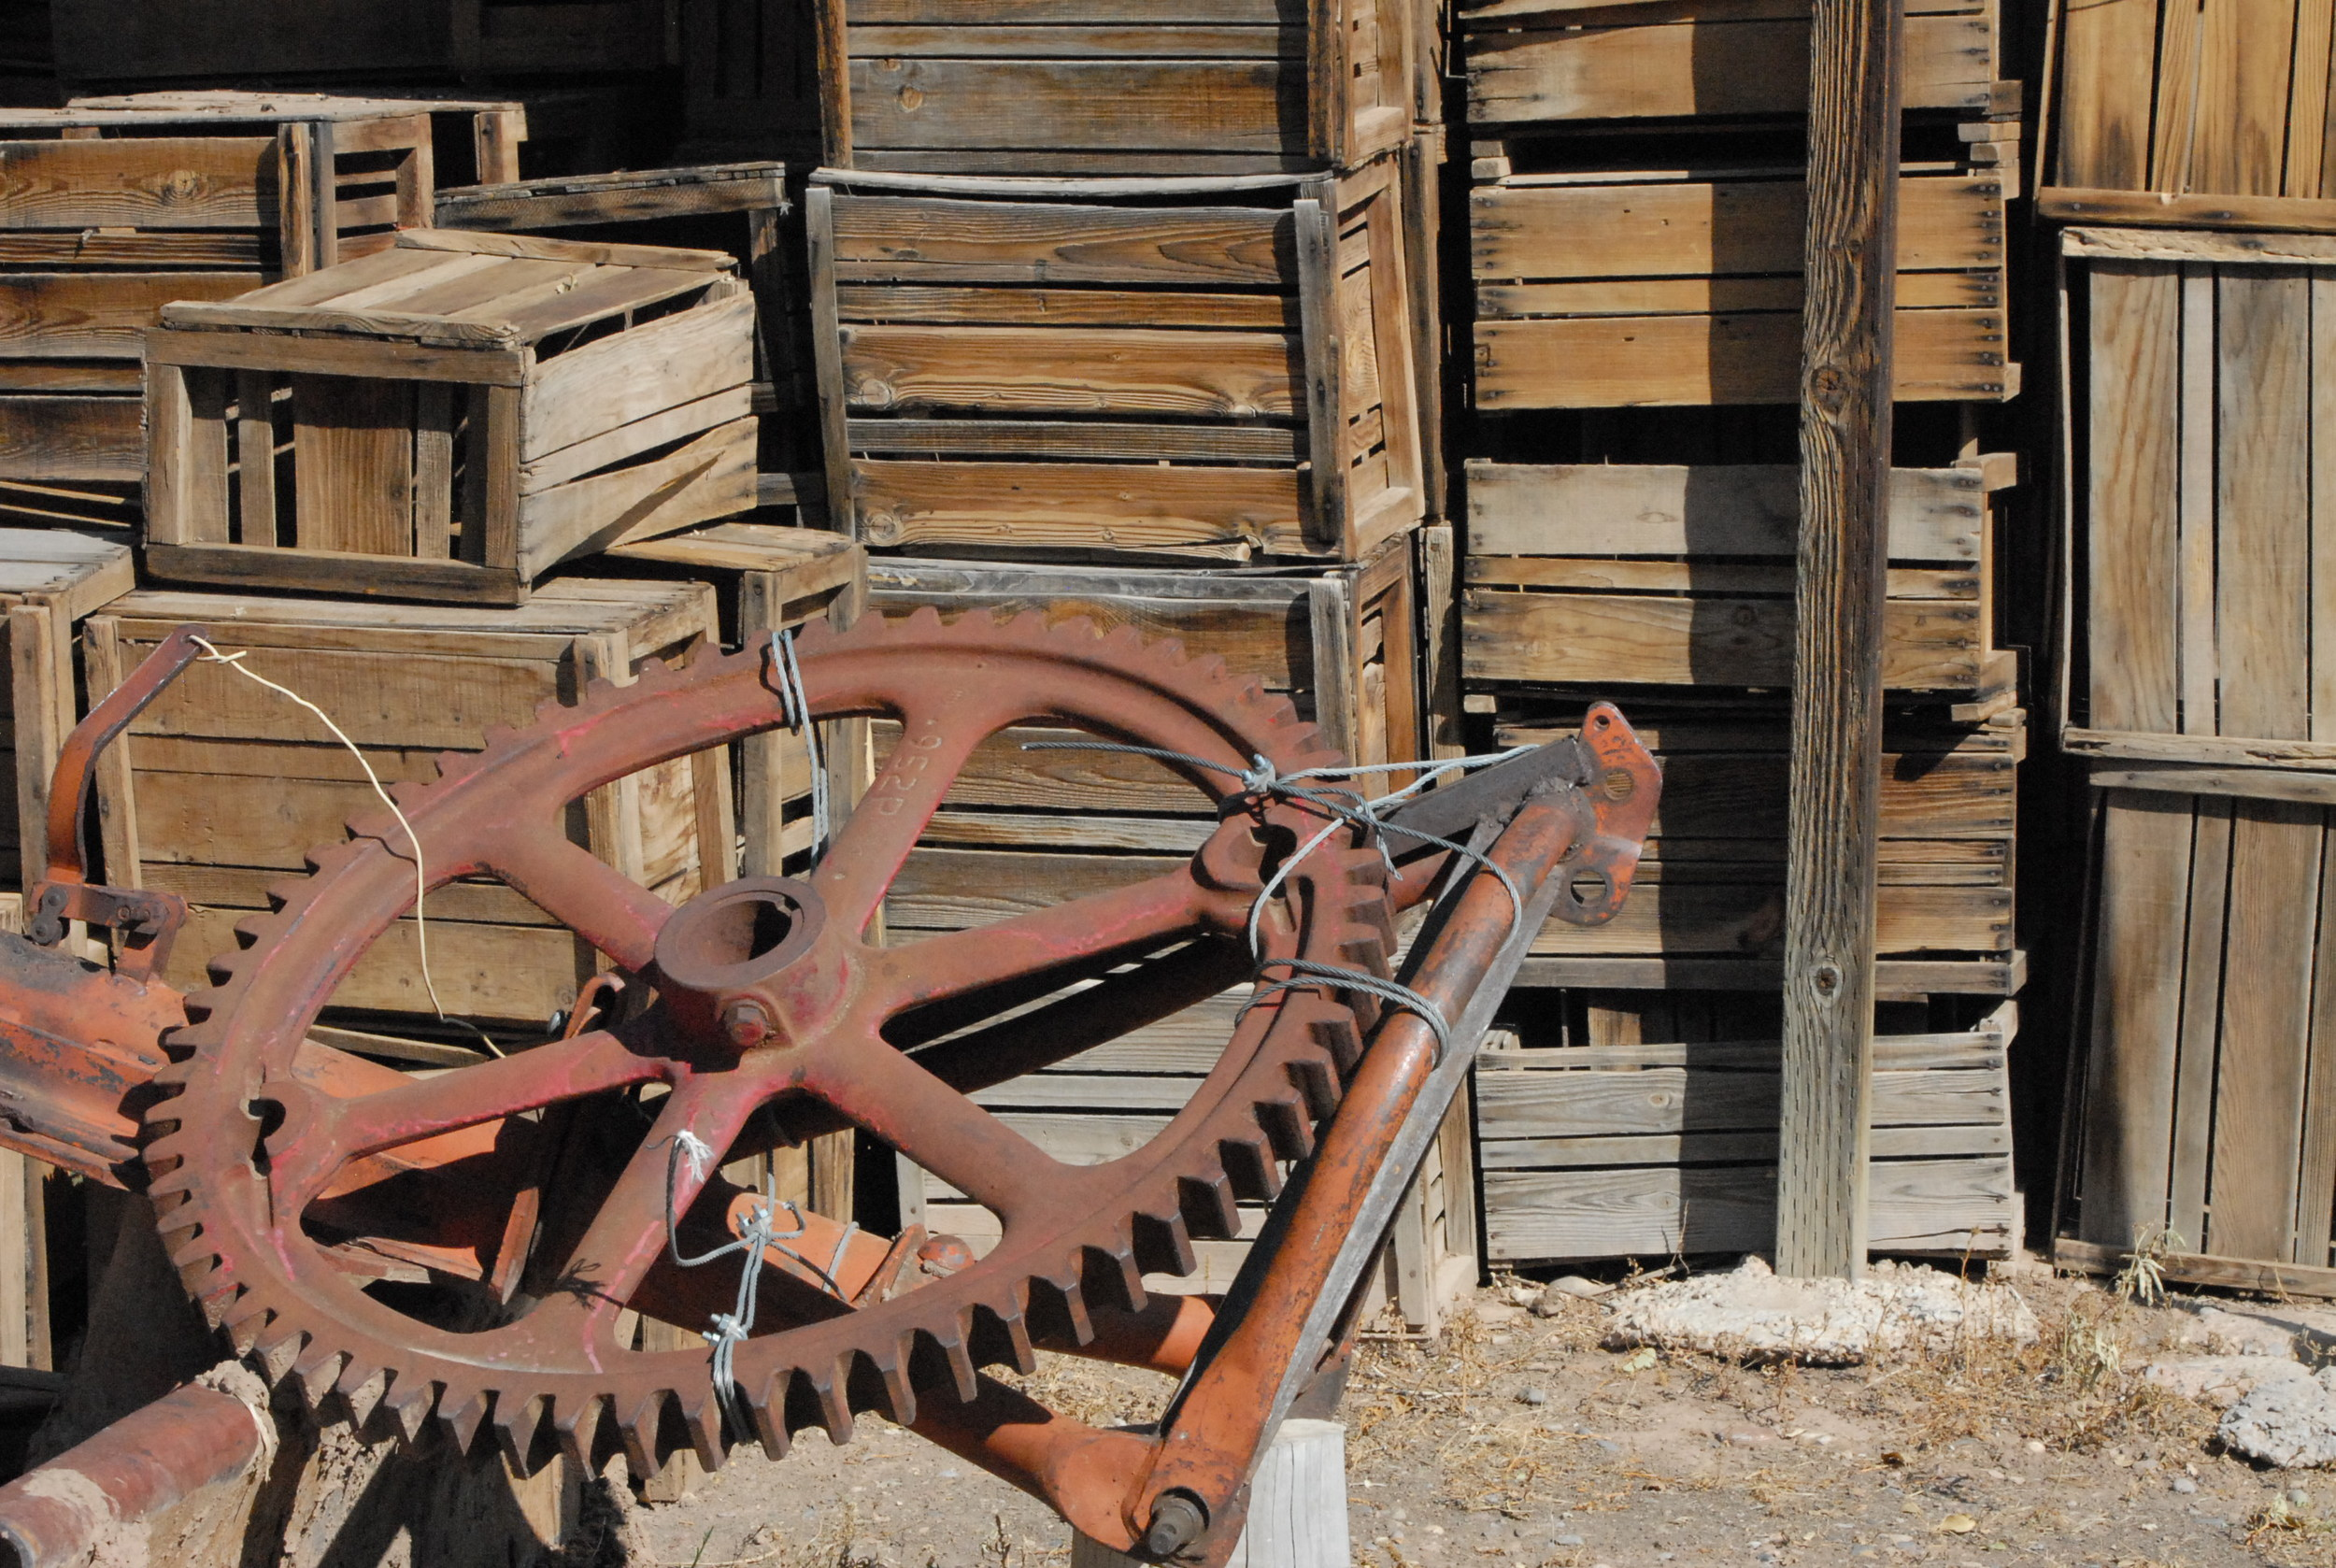 Old apple crates and machinery